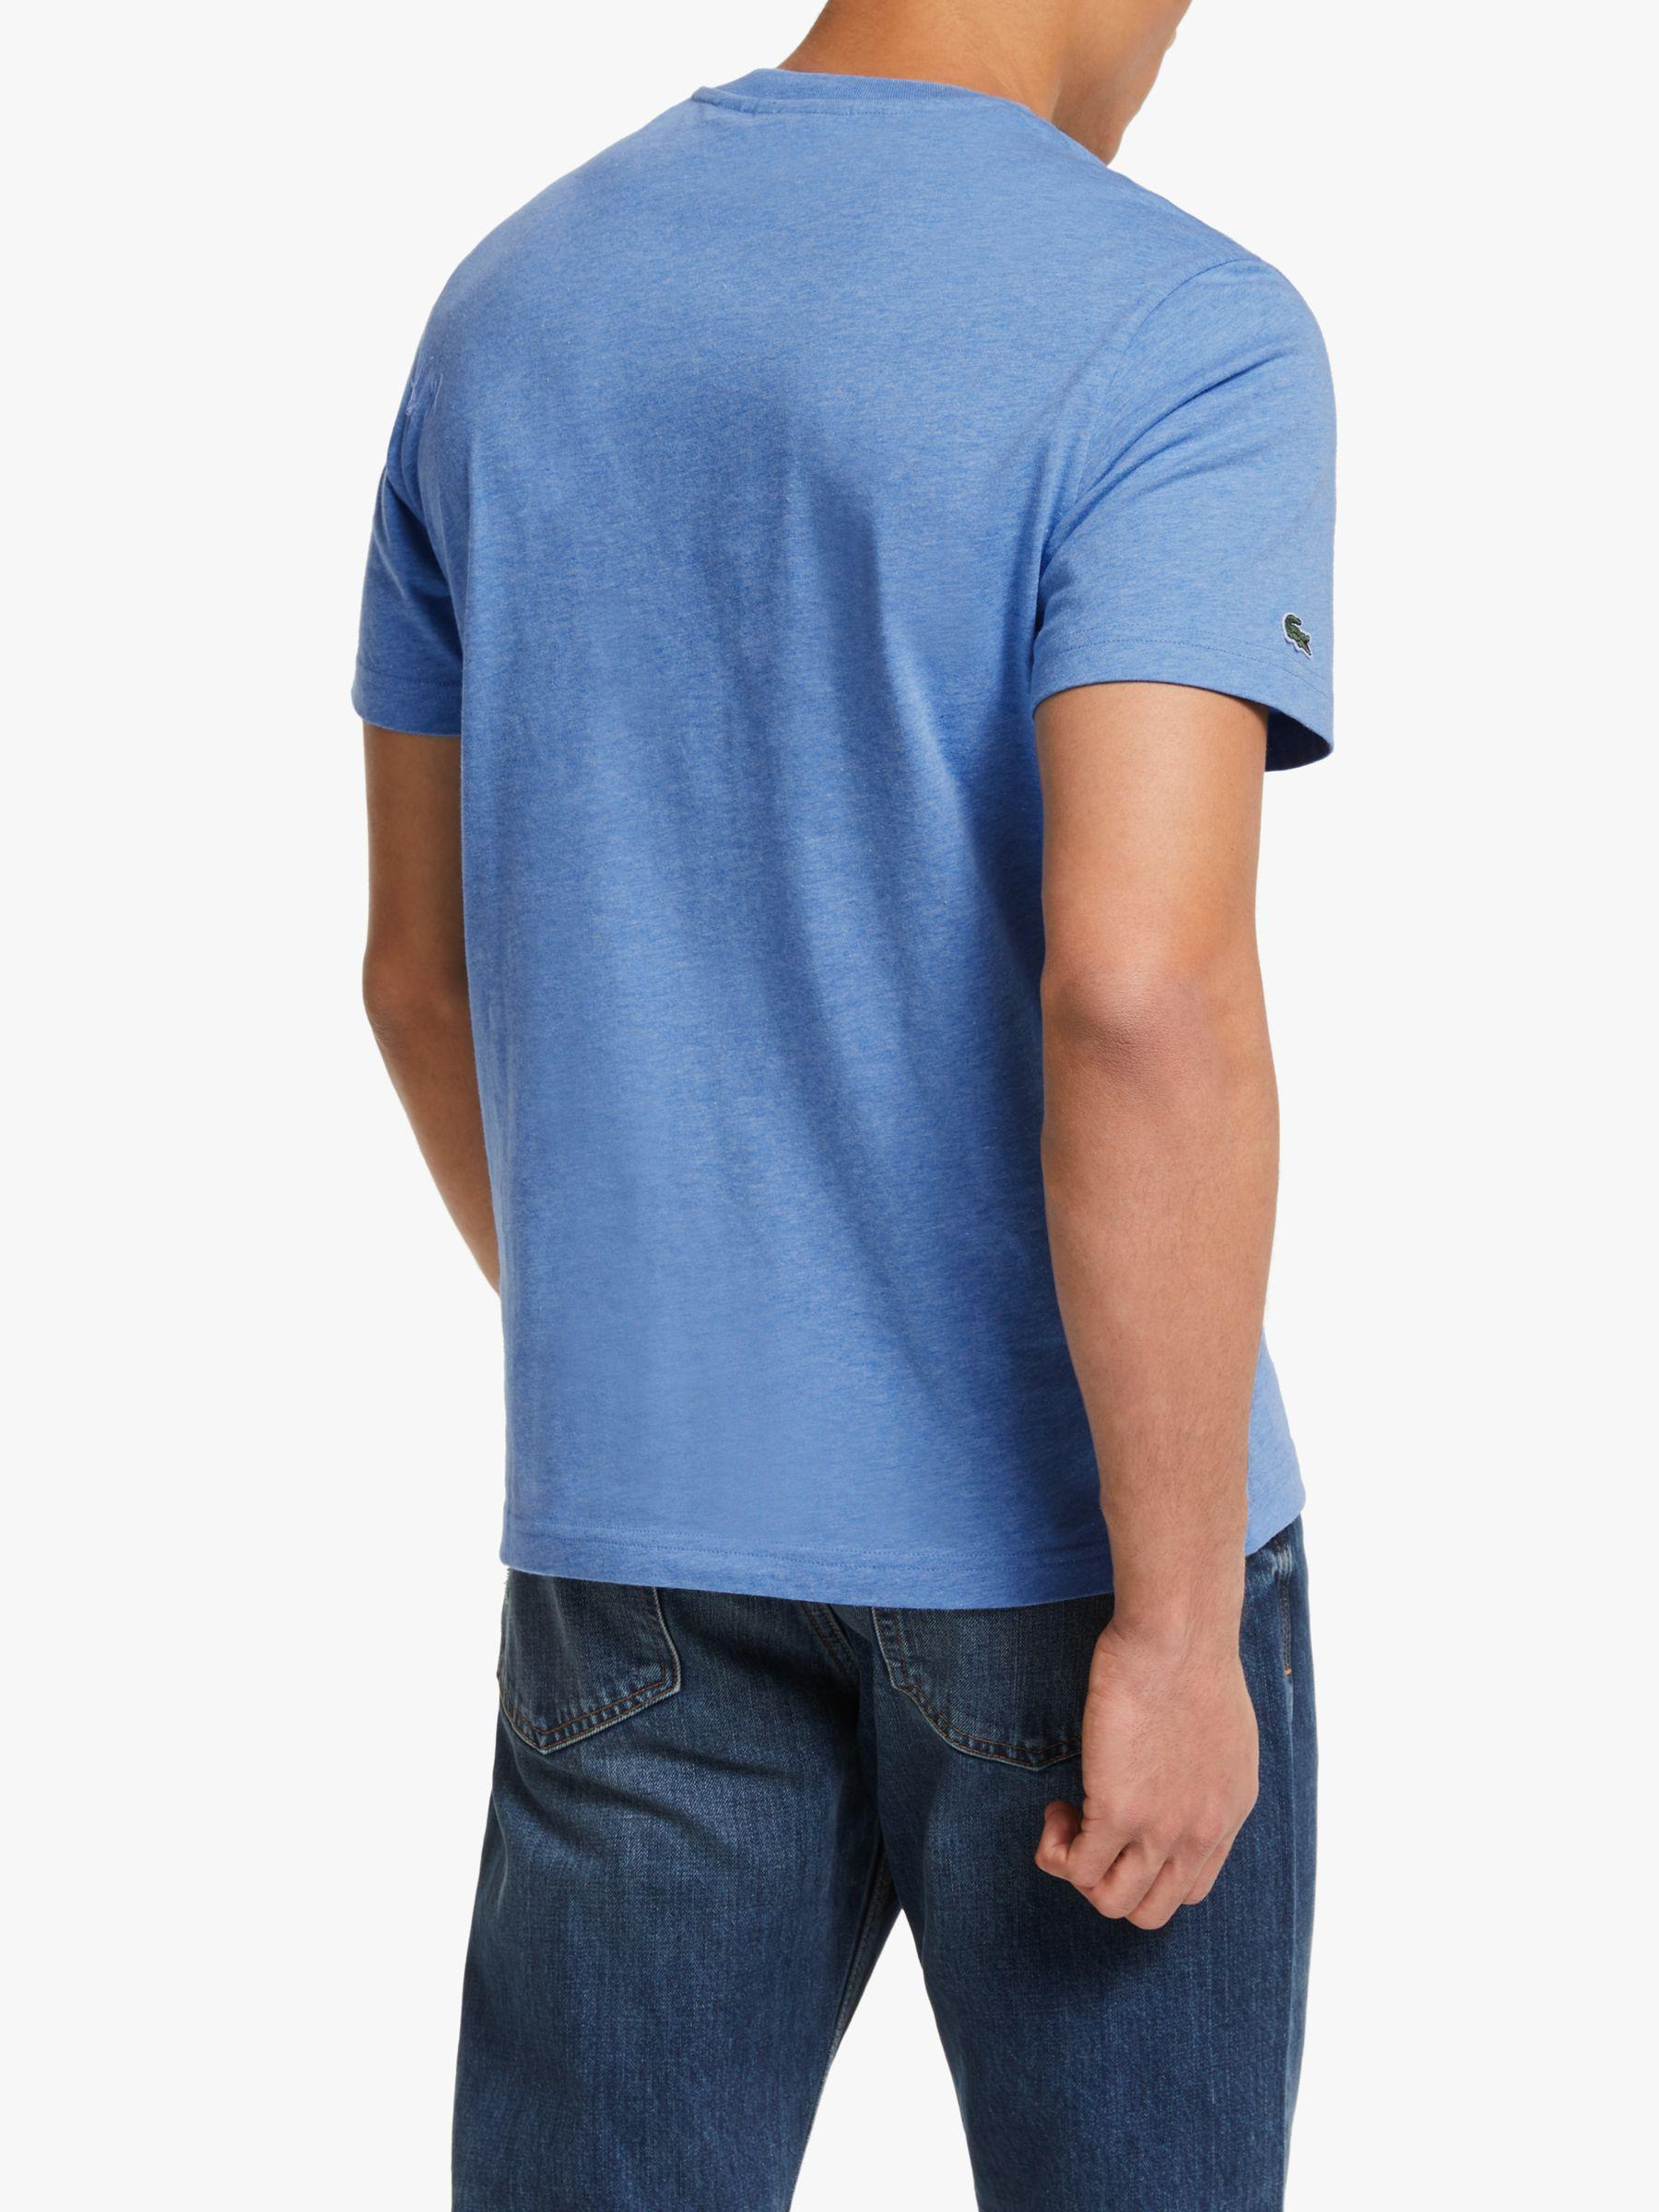 963e0e9c Lacoste Short Sleeve Logo T-shirt in Blue for Men - Lyst